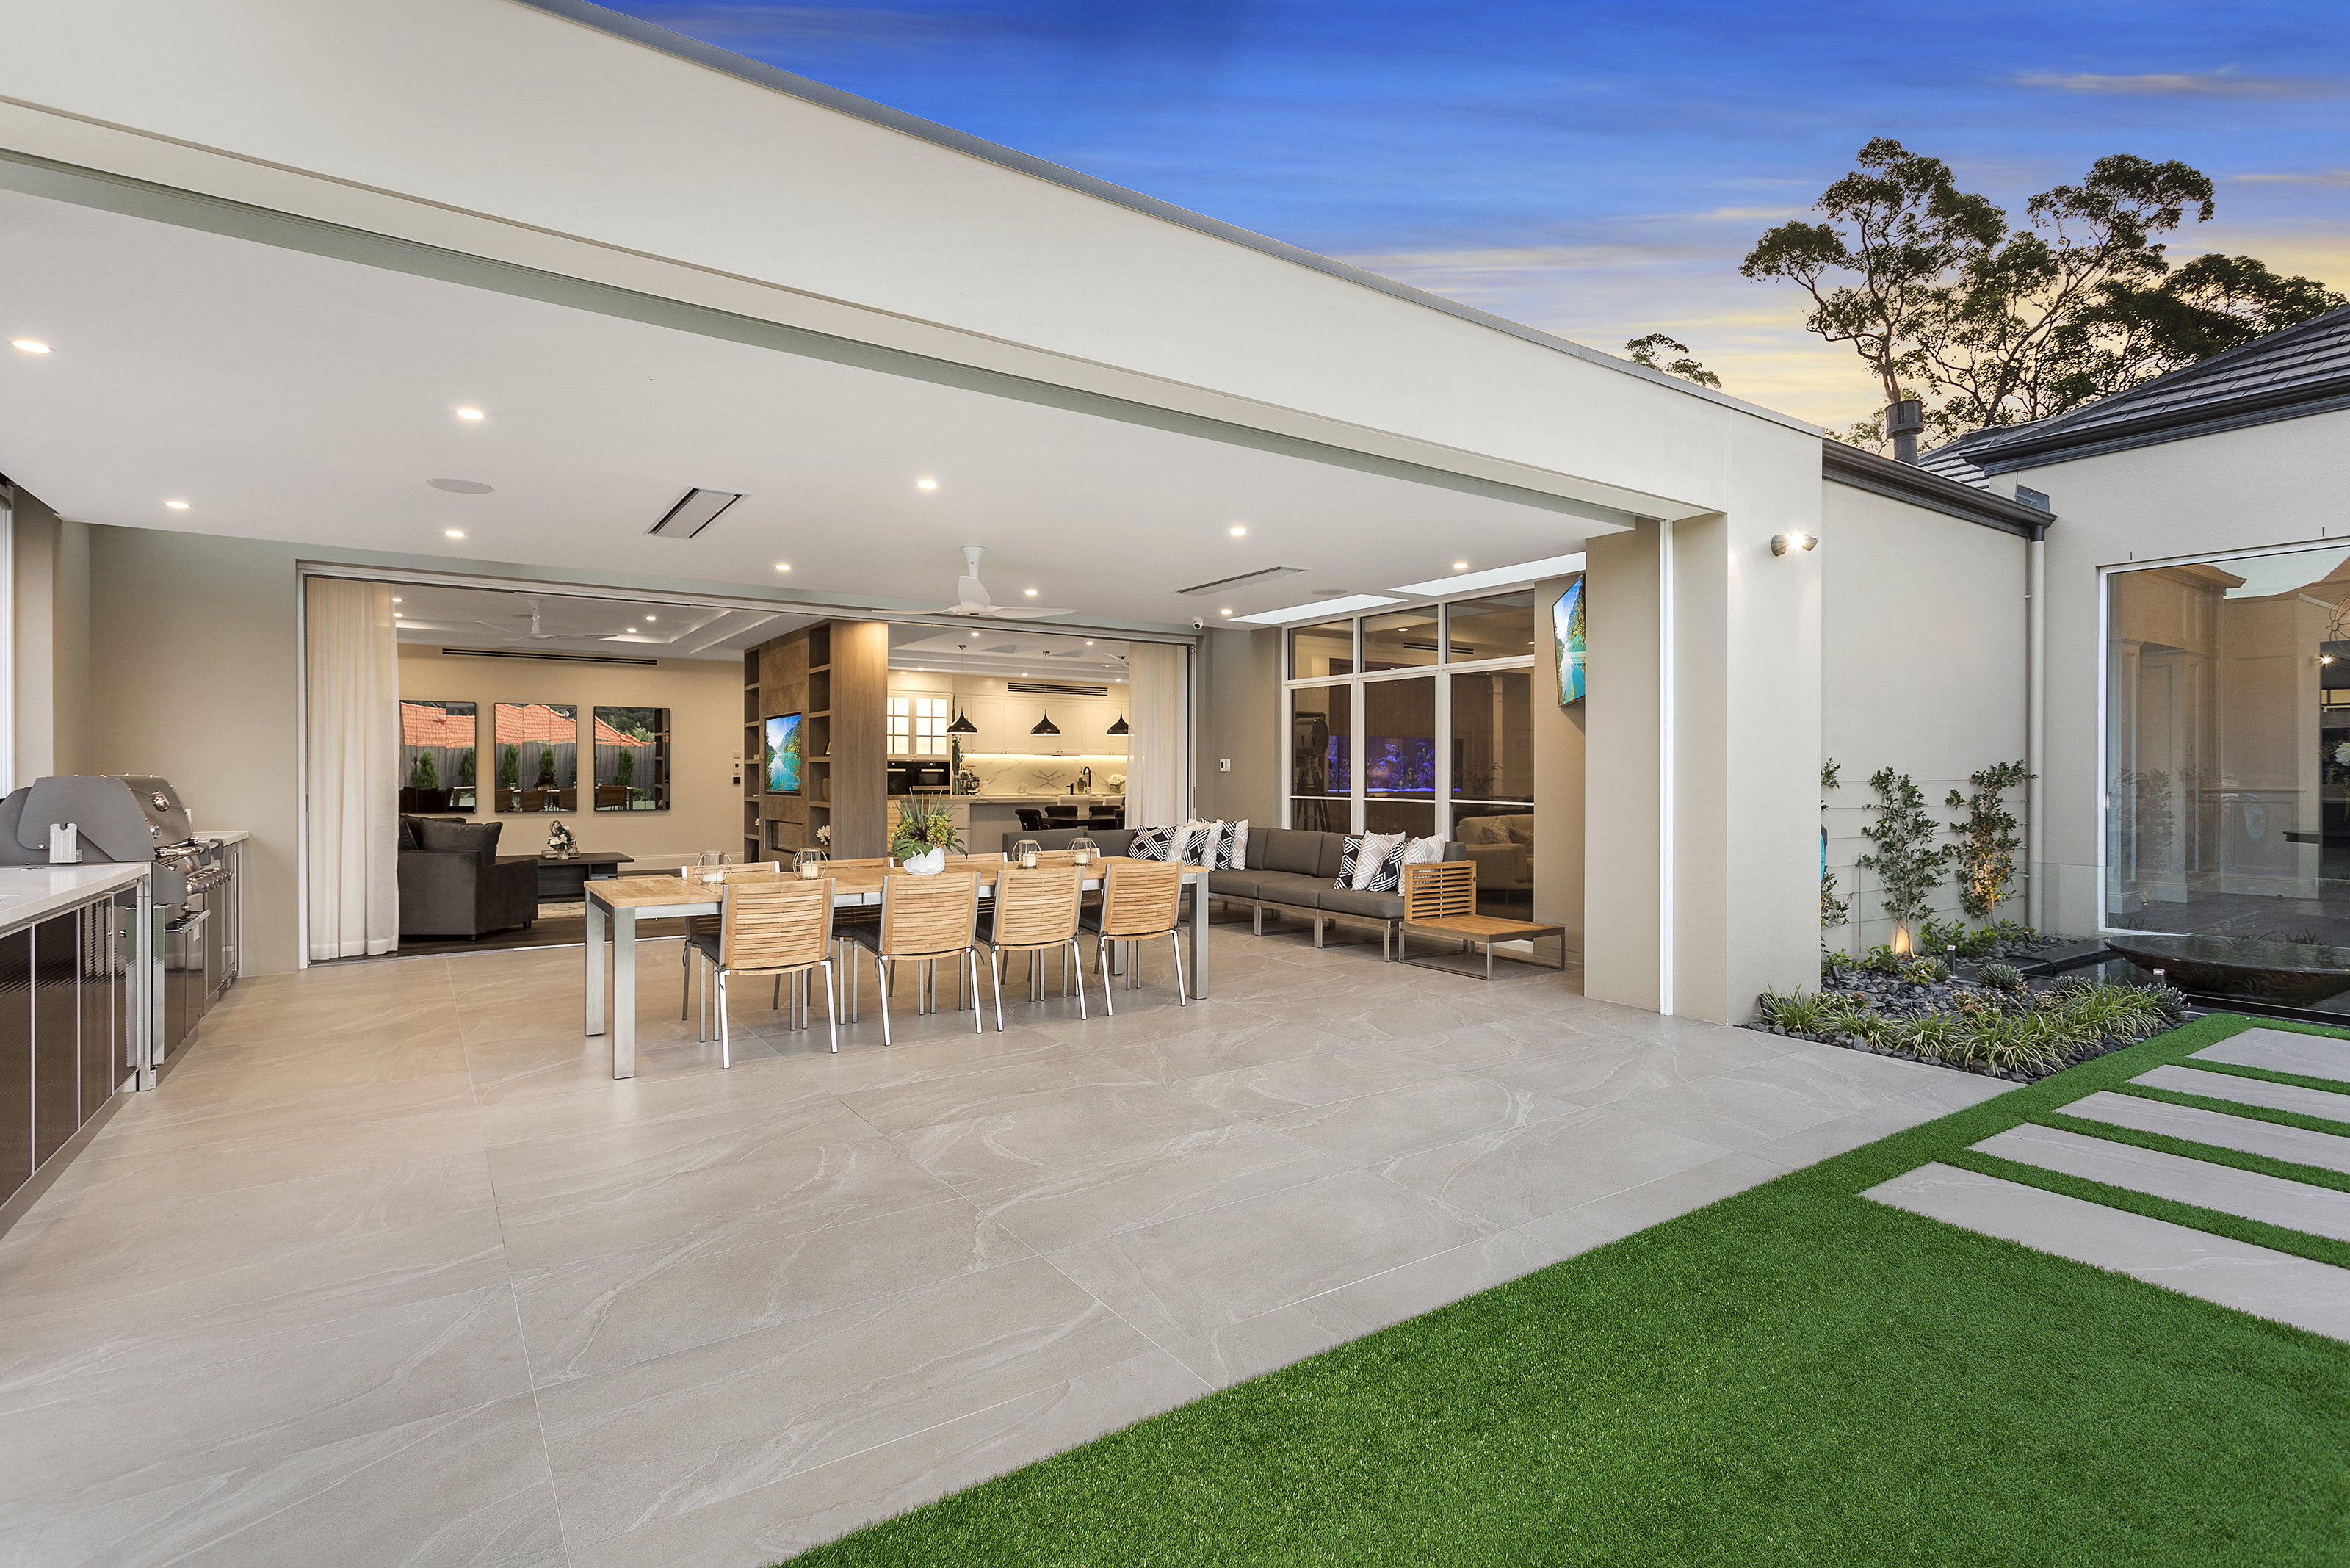 A high calibre custom home: clever lifestyle design - outdoor dining area